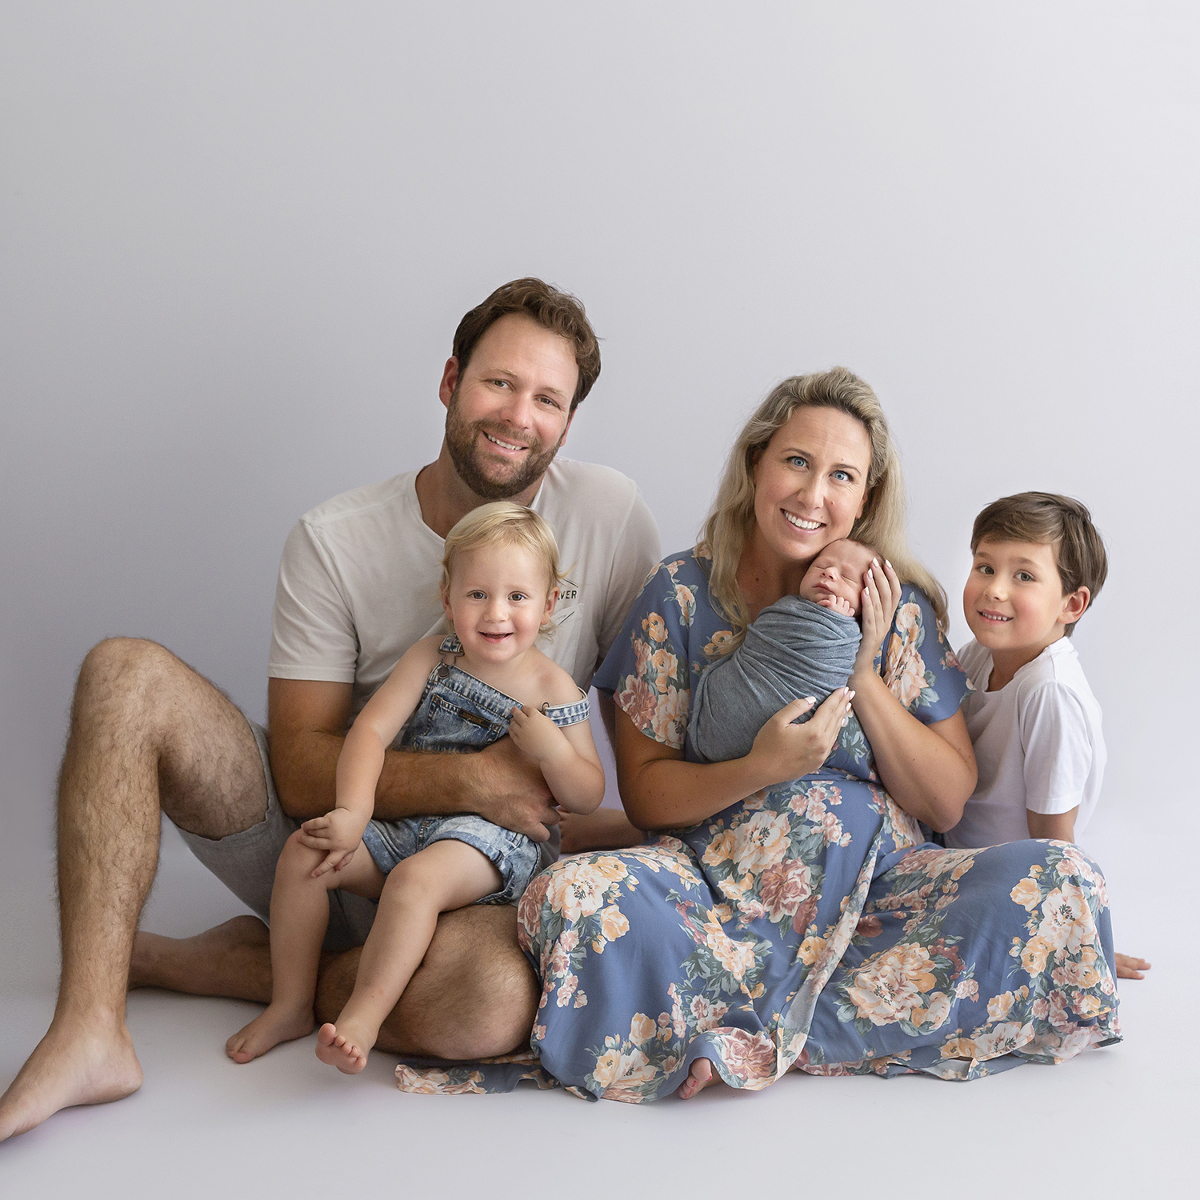 Beautiful words about their newborn and family photo session experience